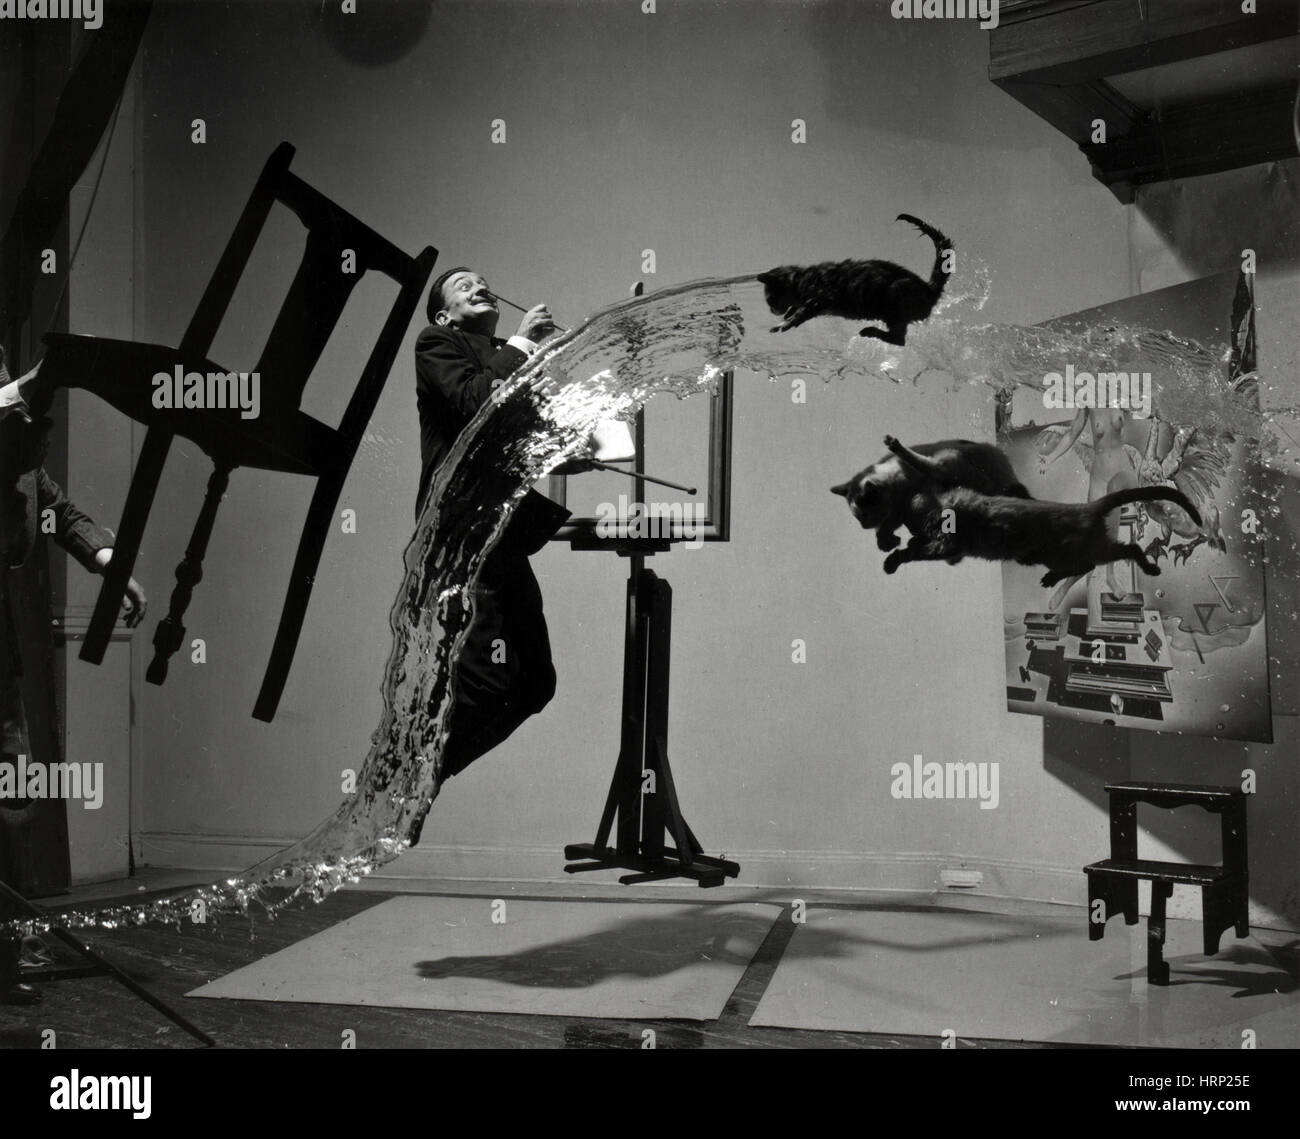 Salvador DalÌ_, Spanish Surrealist Artist - Stock Image